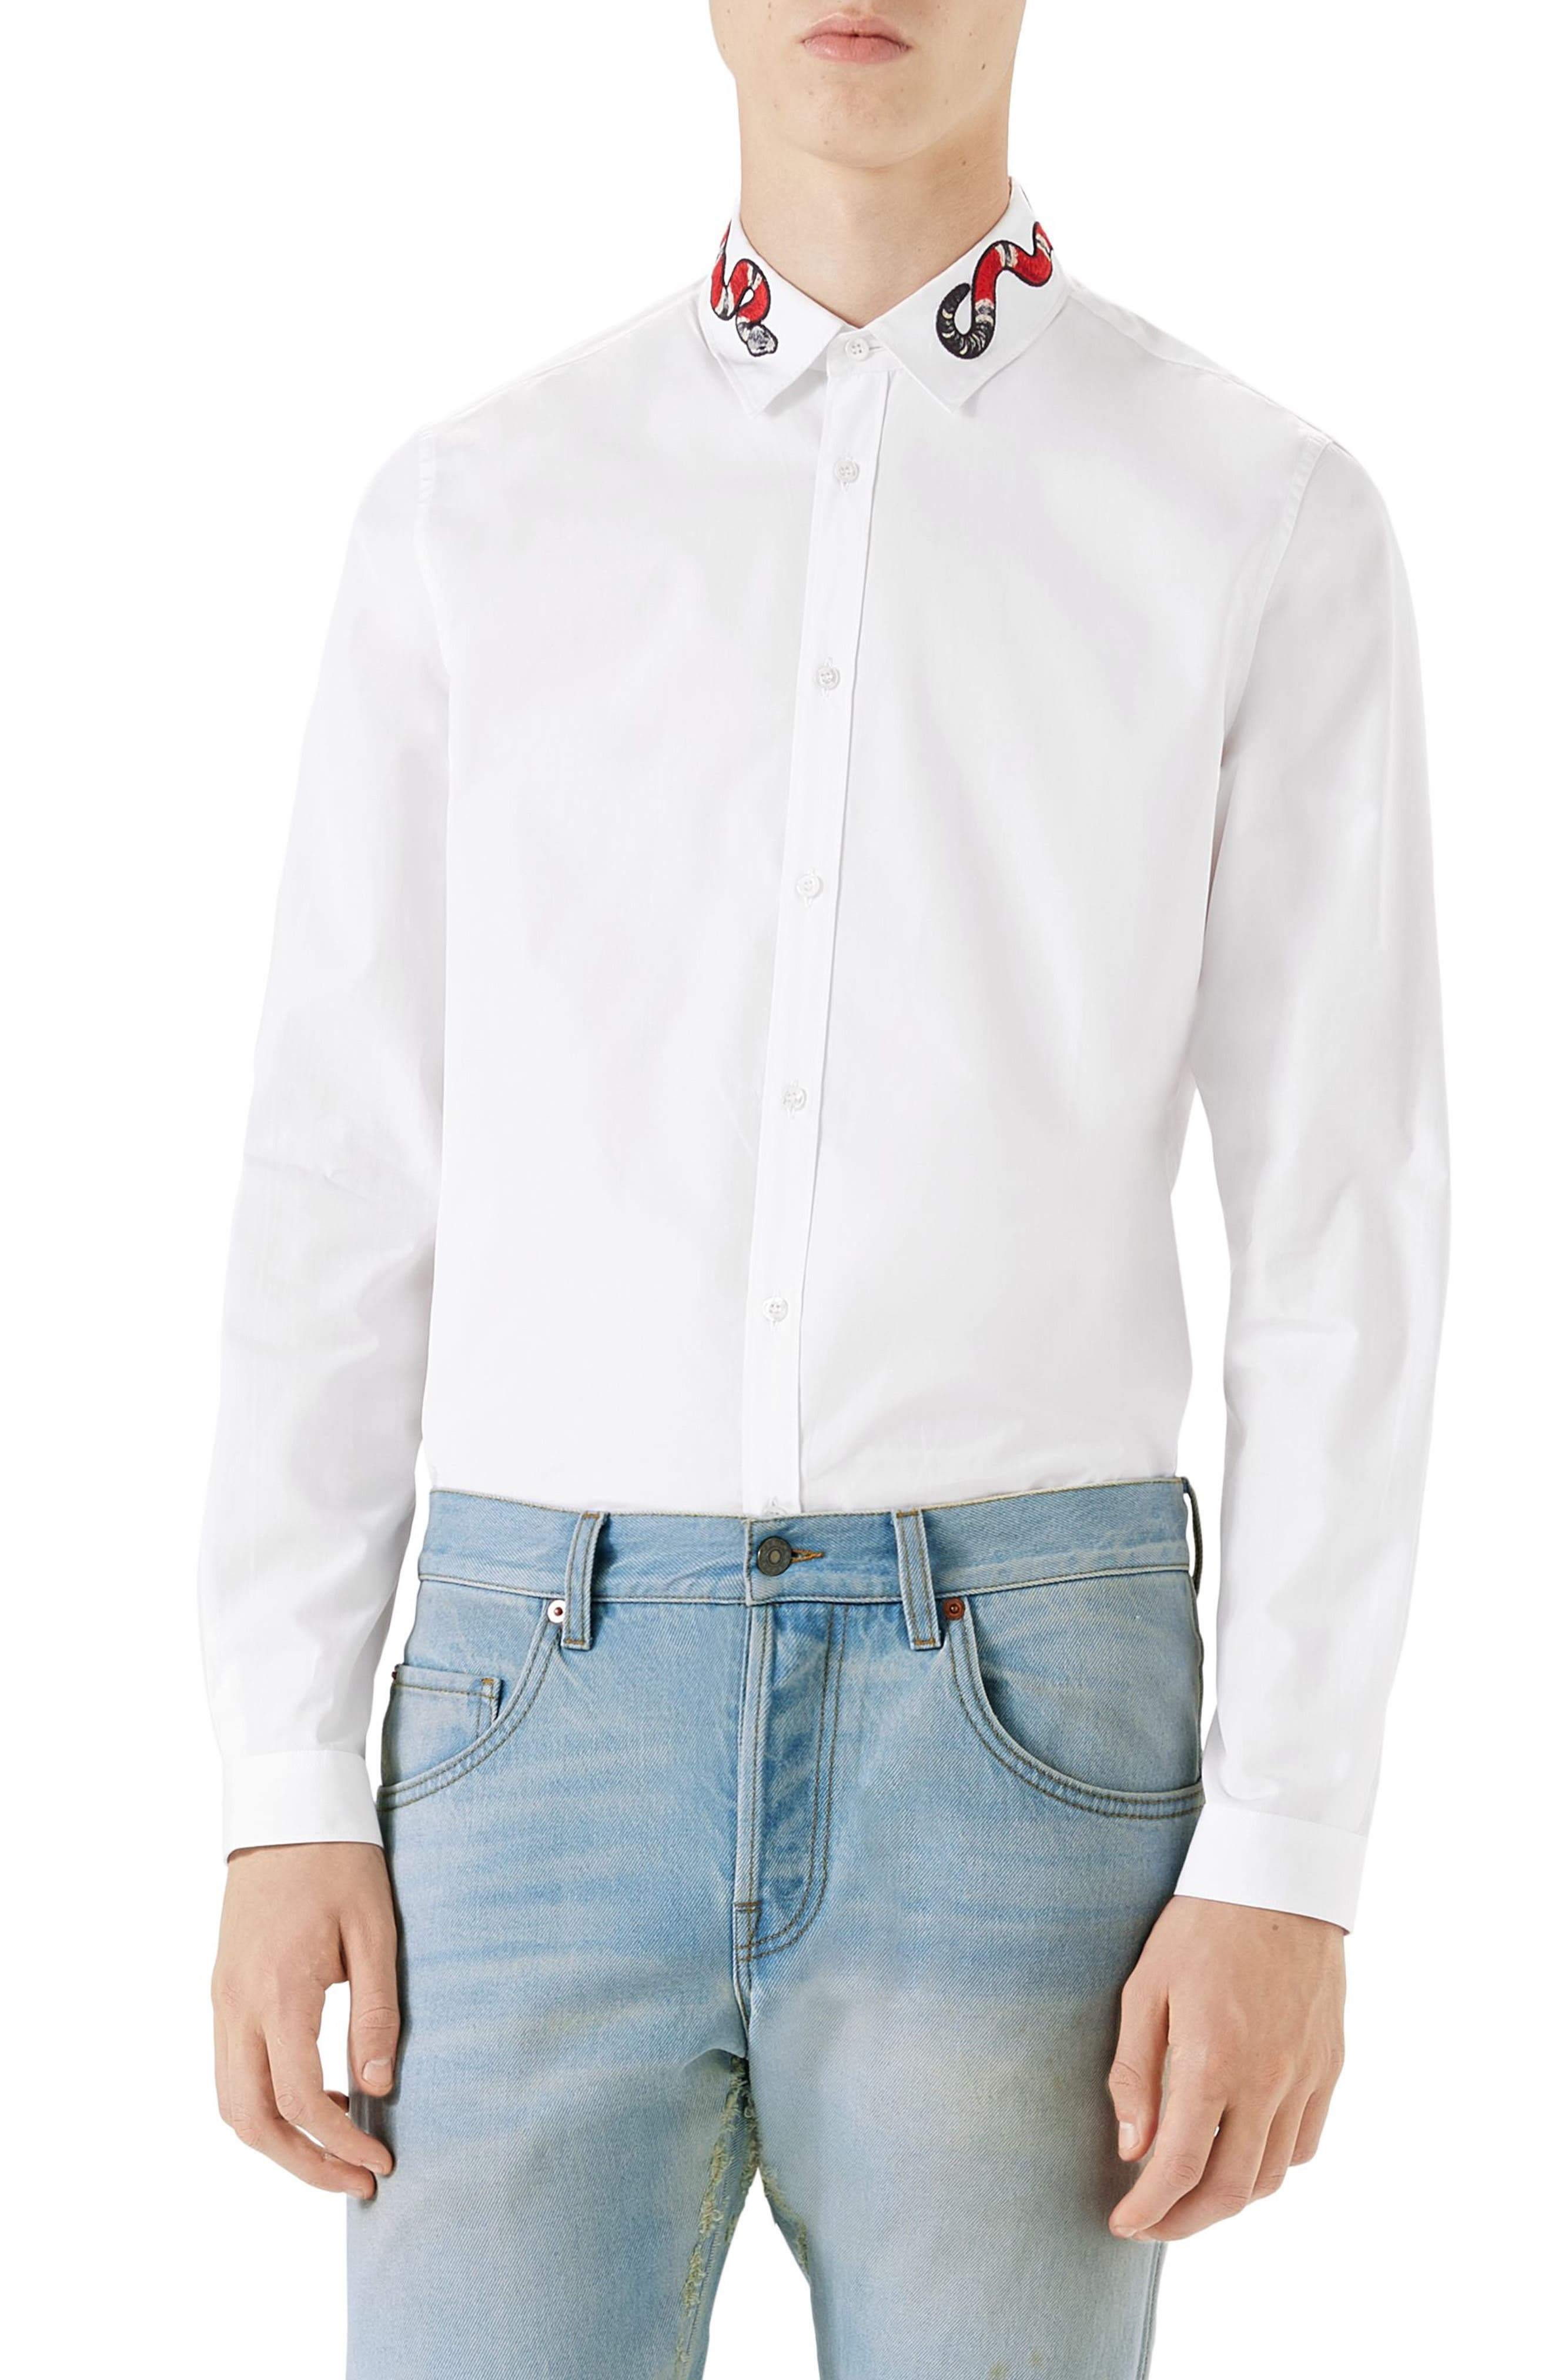 Snake Embroidered Collar Shirt,                         Main,                         color, White